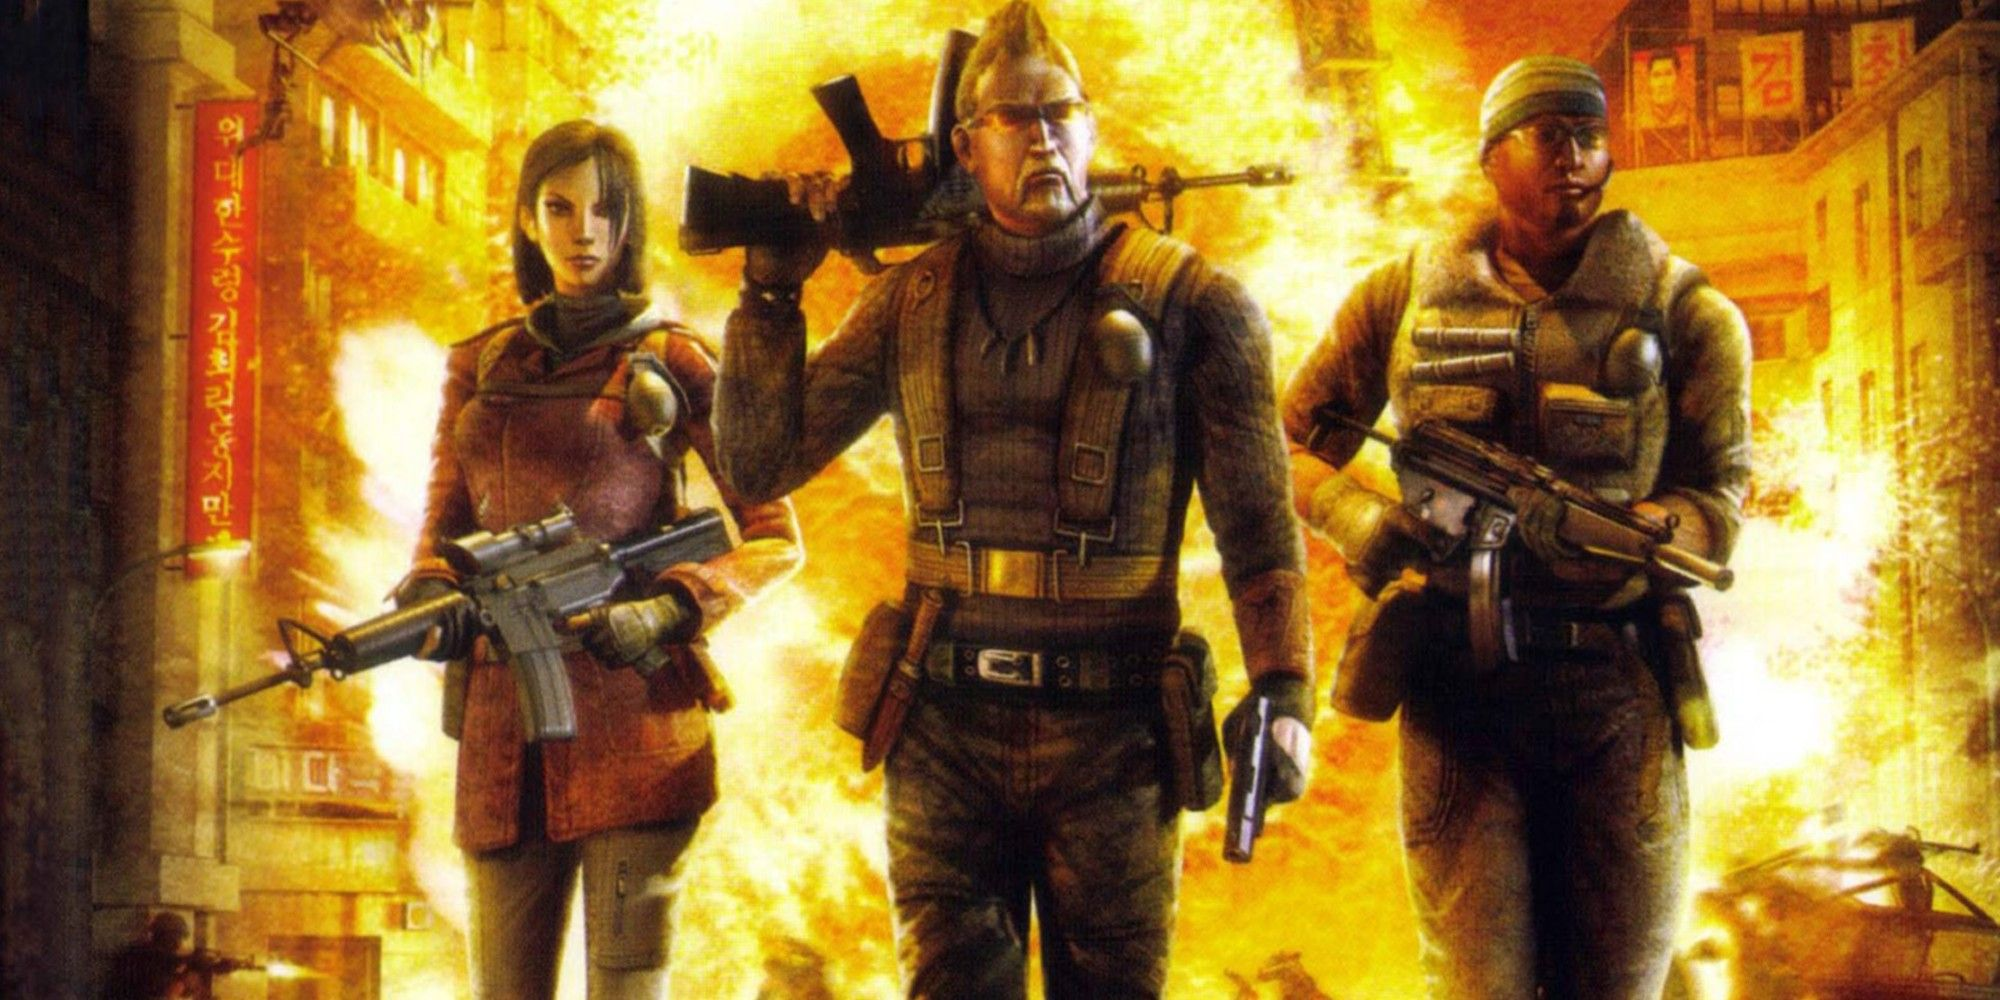 Mercenaries: The Open-World Action Series That Died Too Soon